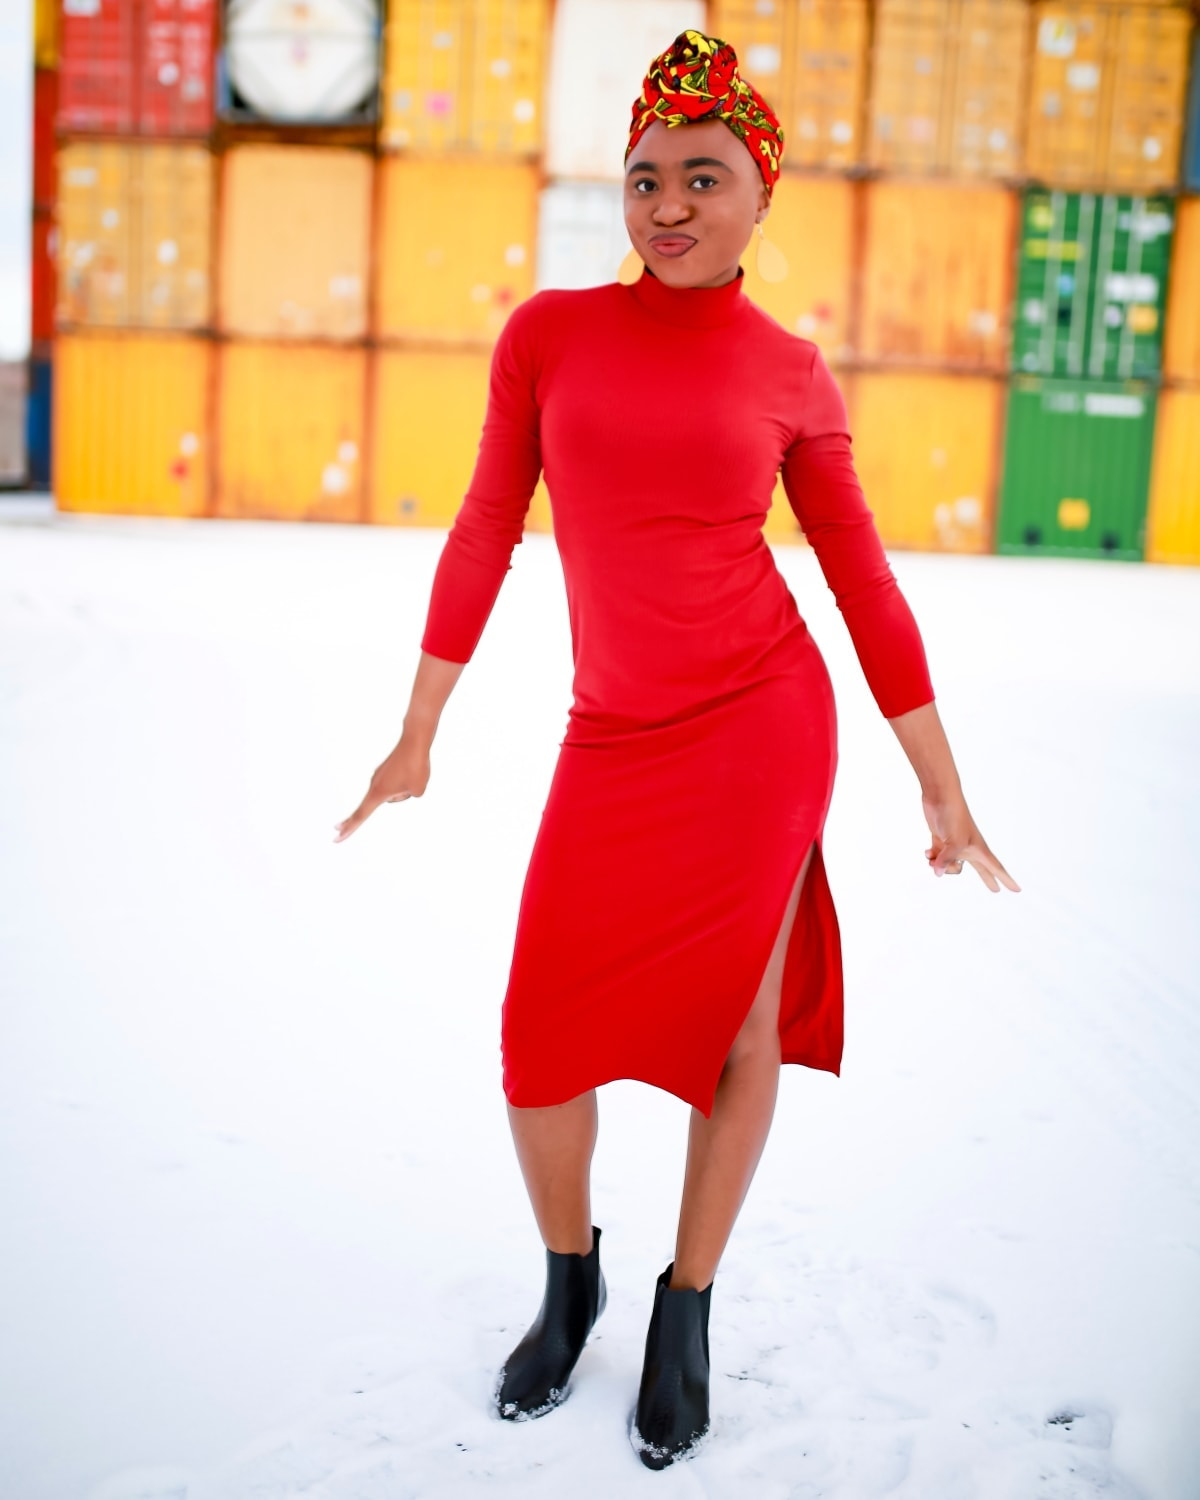 Not sure how to style a ribbed bodycon dress? Fashion blogger, Louisa shares a simple way to show off your curves comfortably without trying too hard. #amazon #amazonfashion #bodycondress